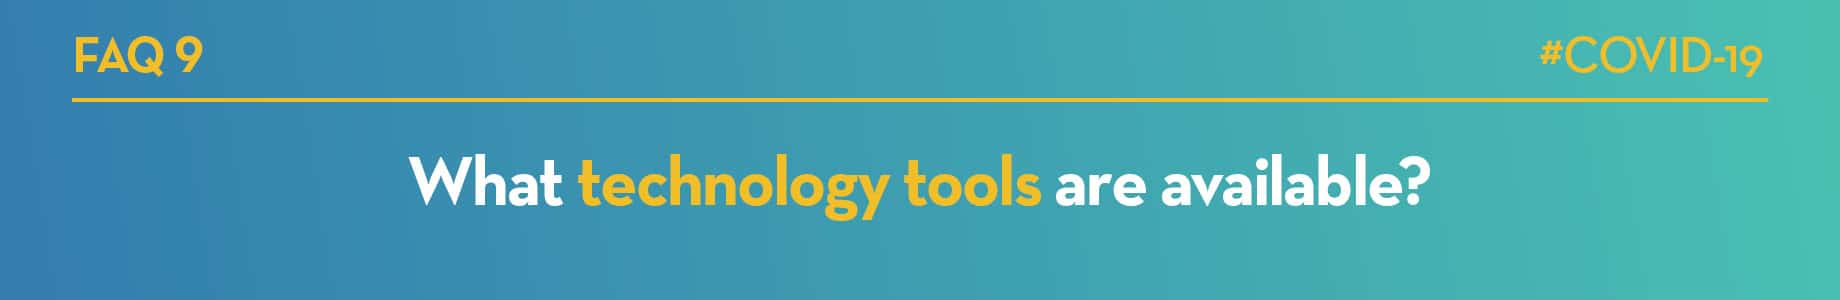 What technology tools are available?